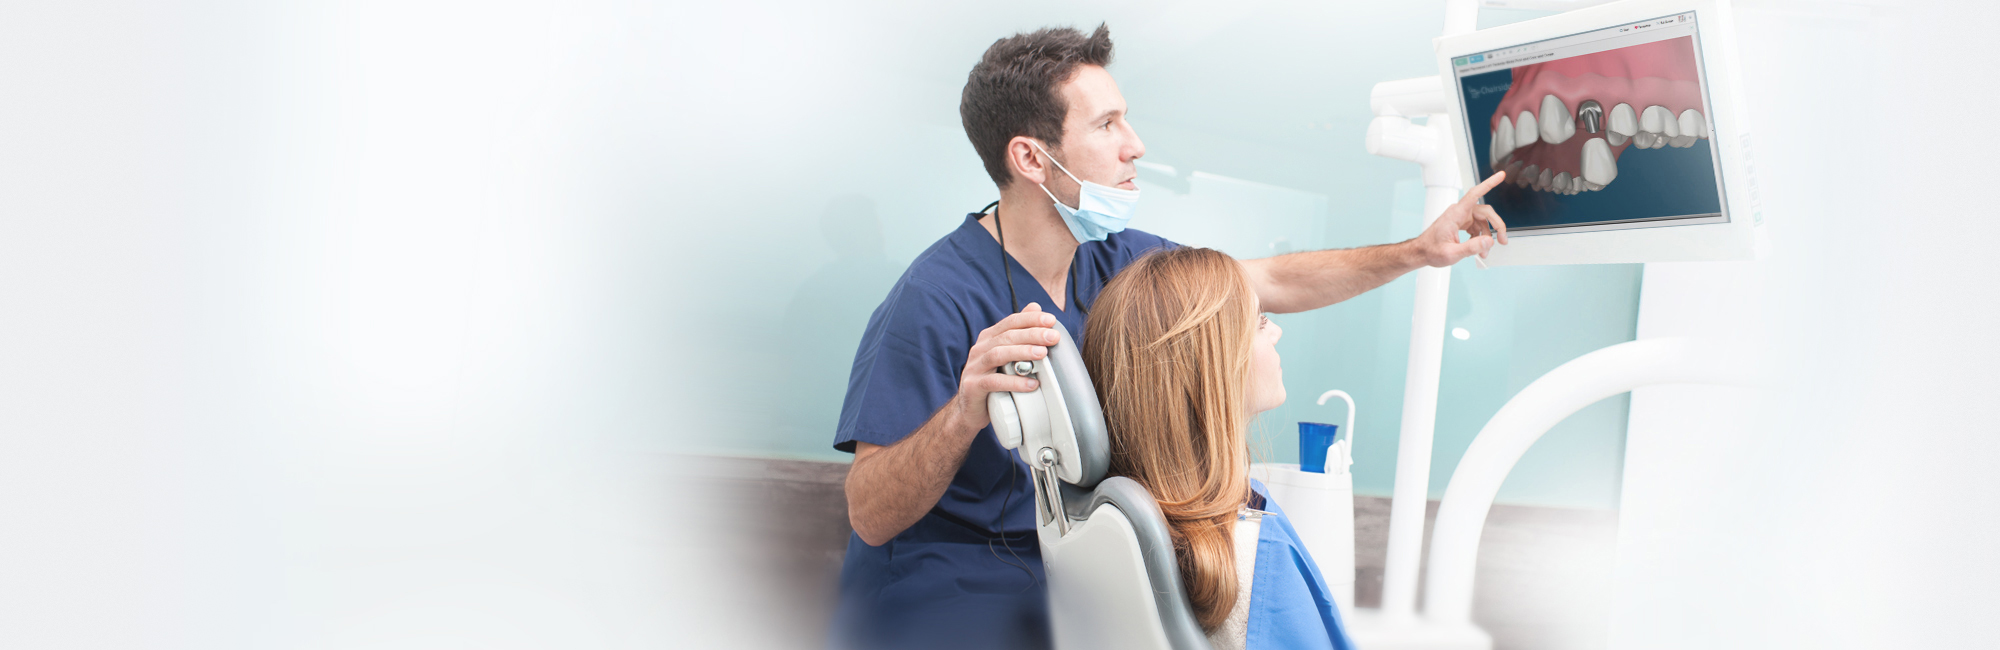 dentist showing dental video software